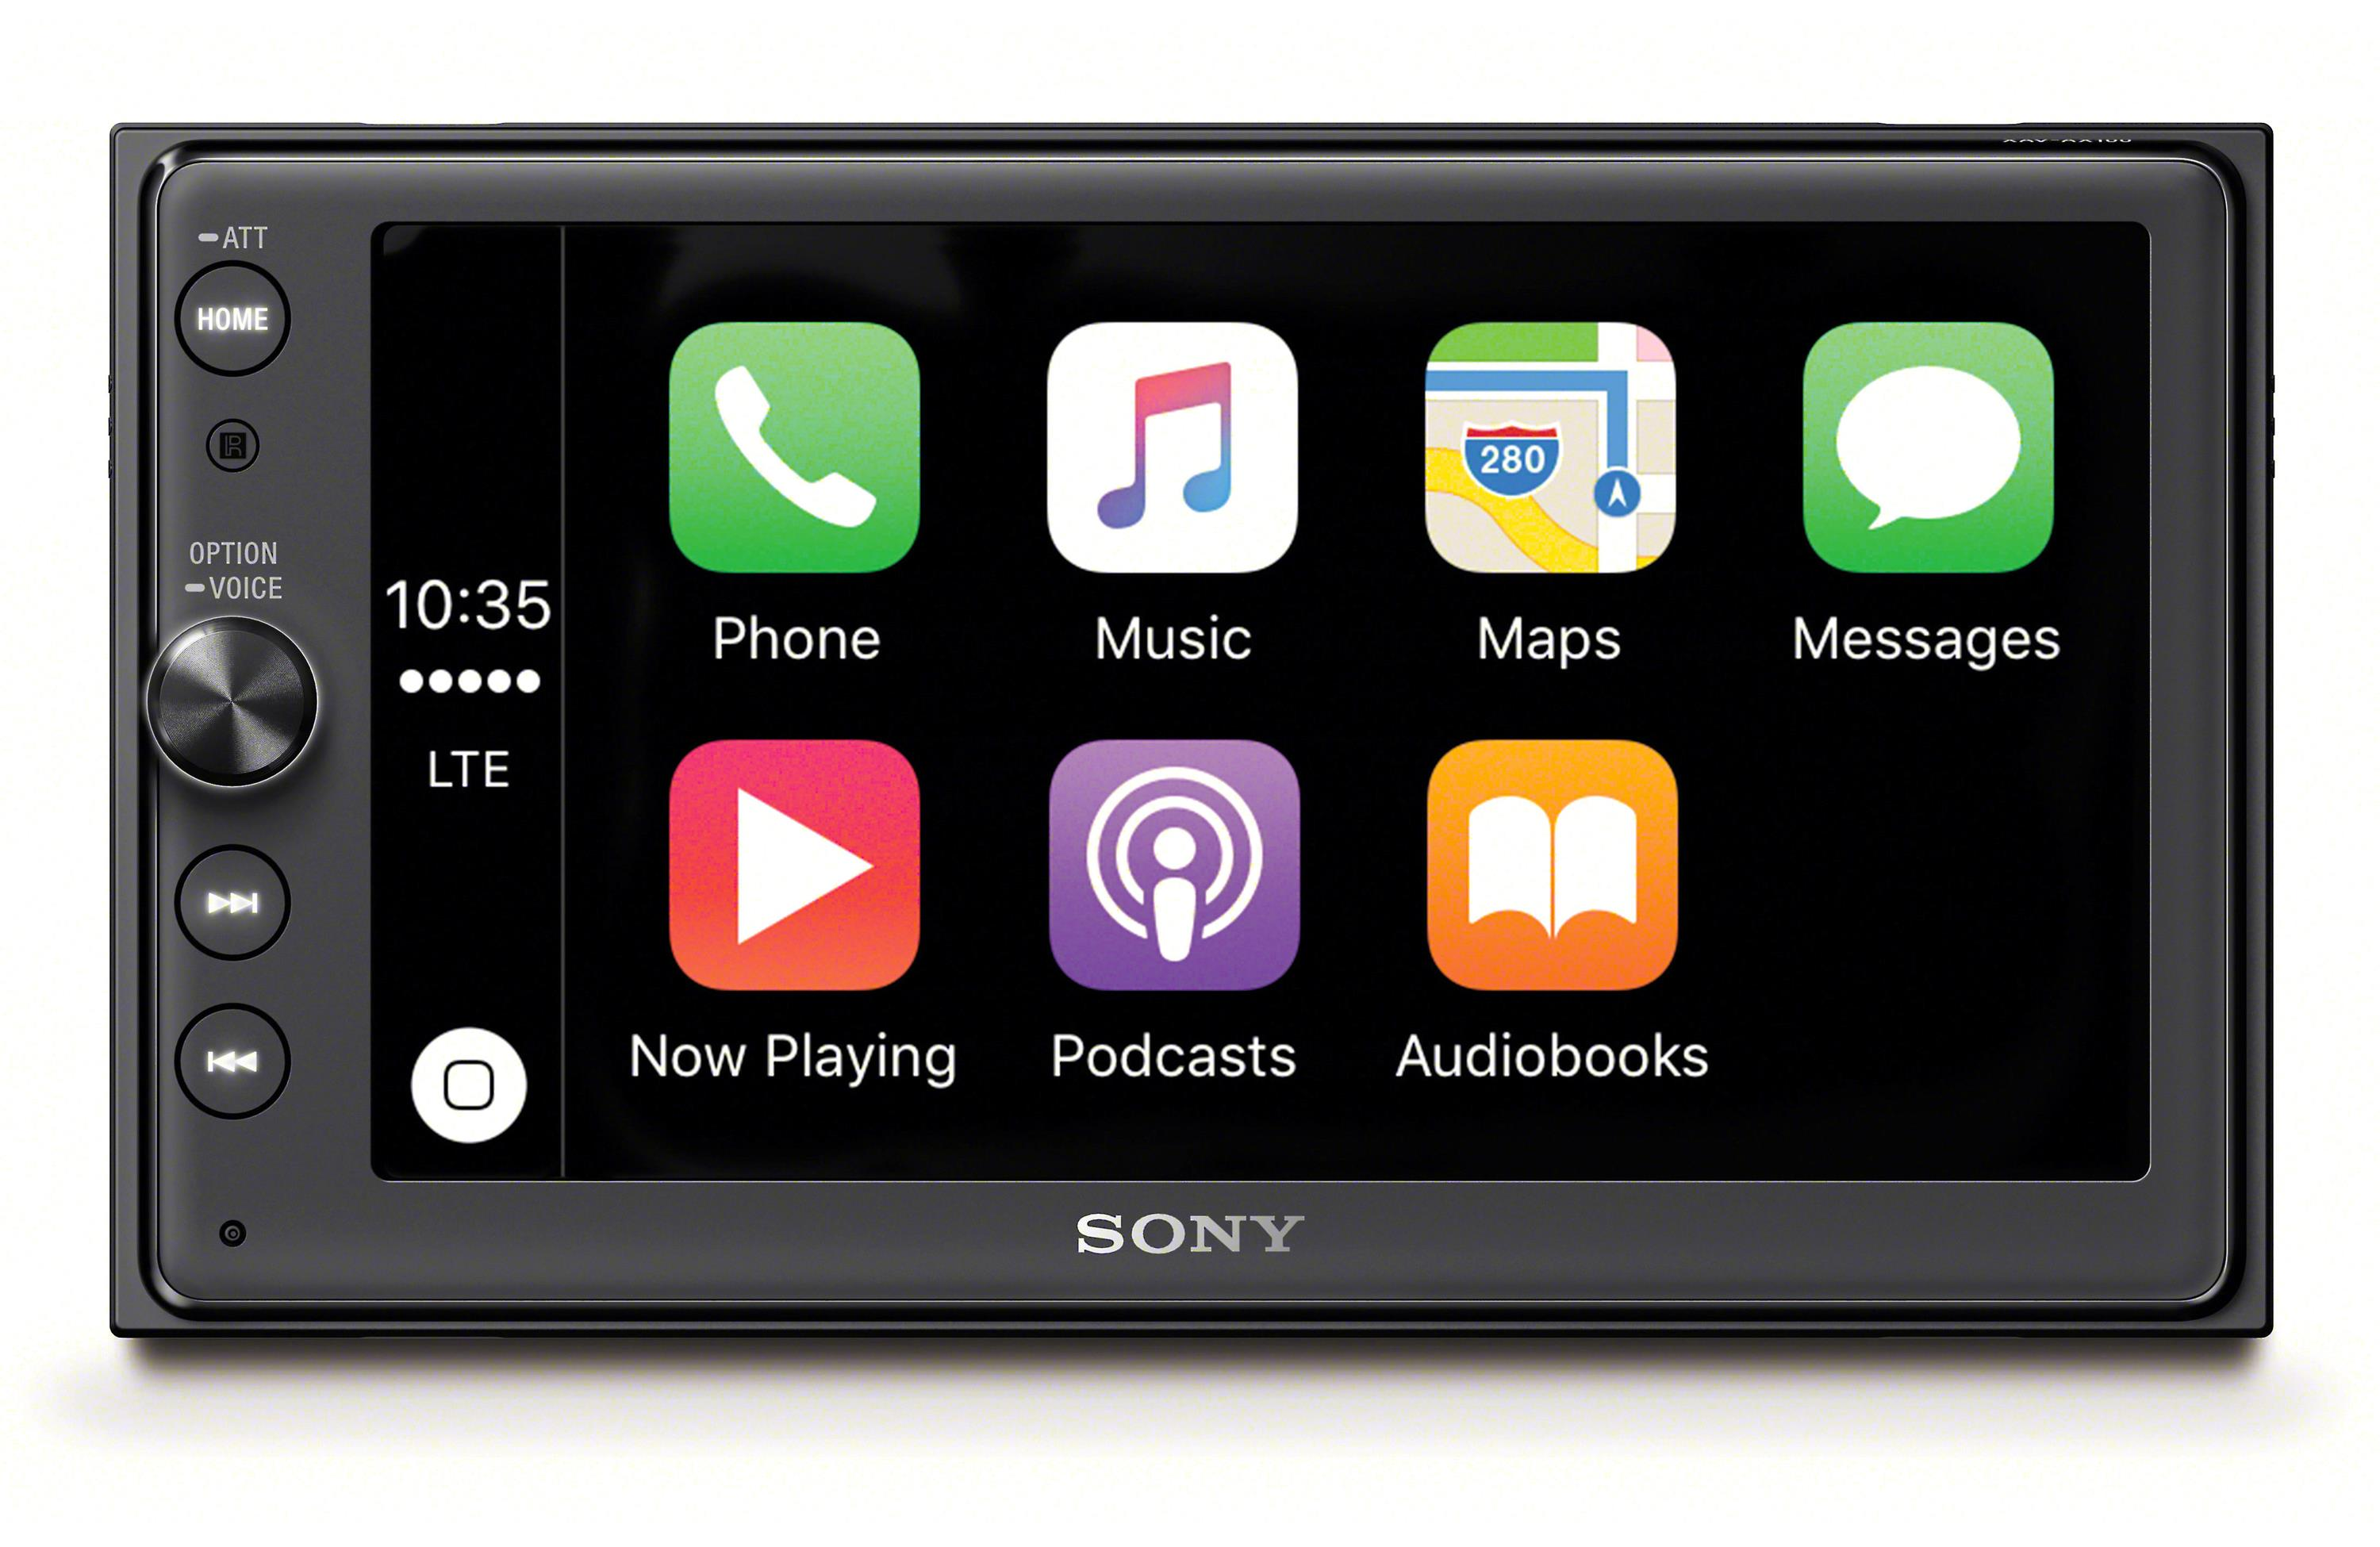 Save $50 on this Sony receiver with Apple CarPlay and Android Auto — Ends 6/3